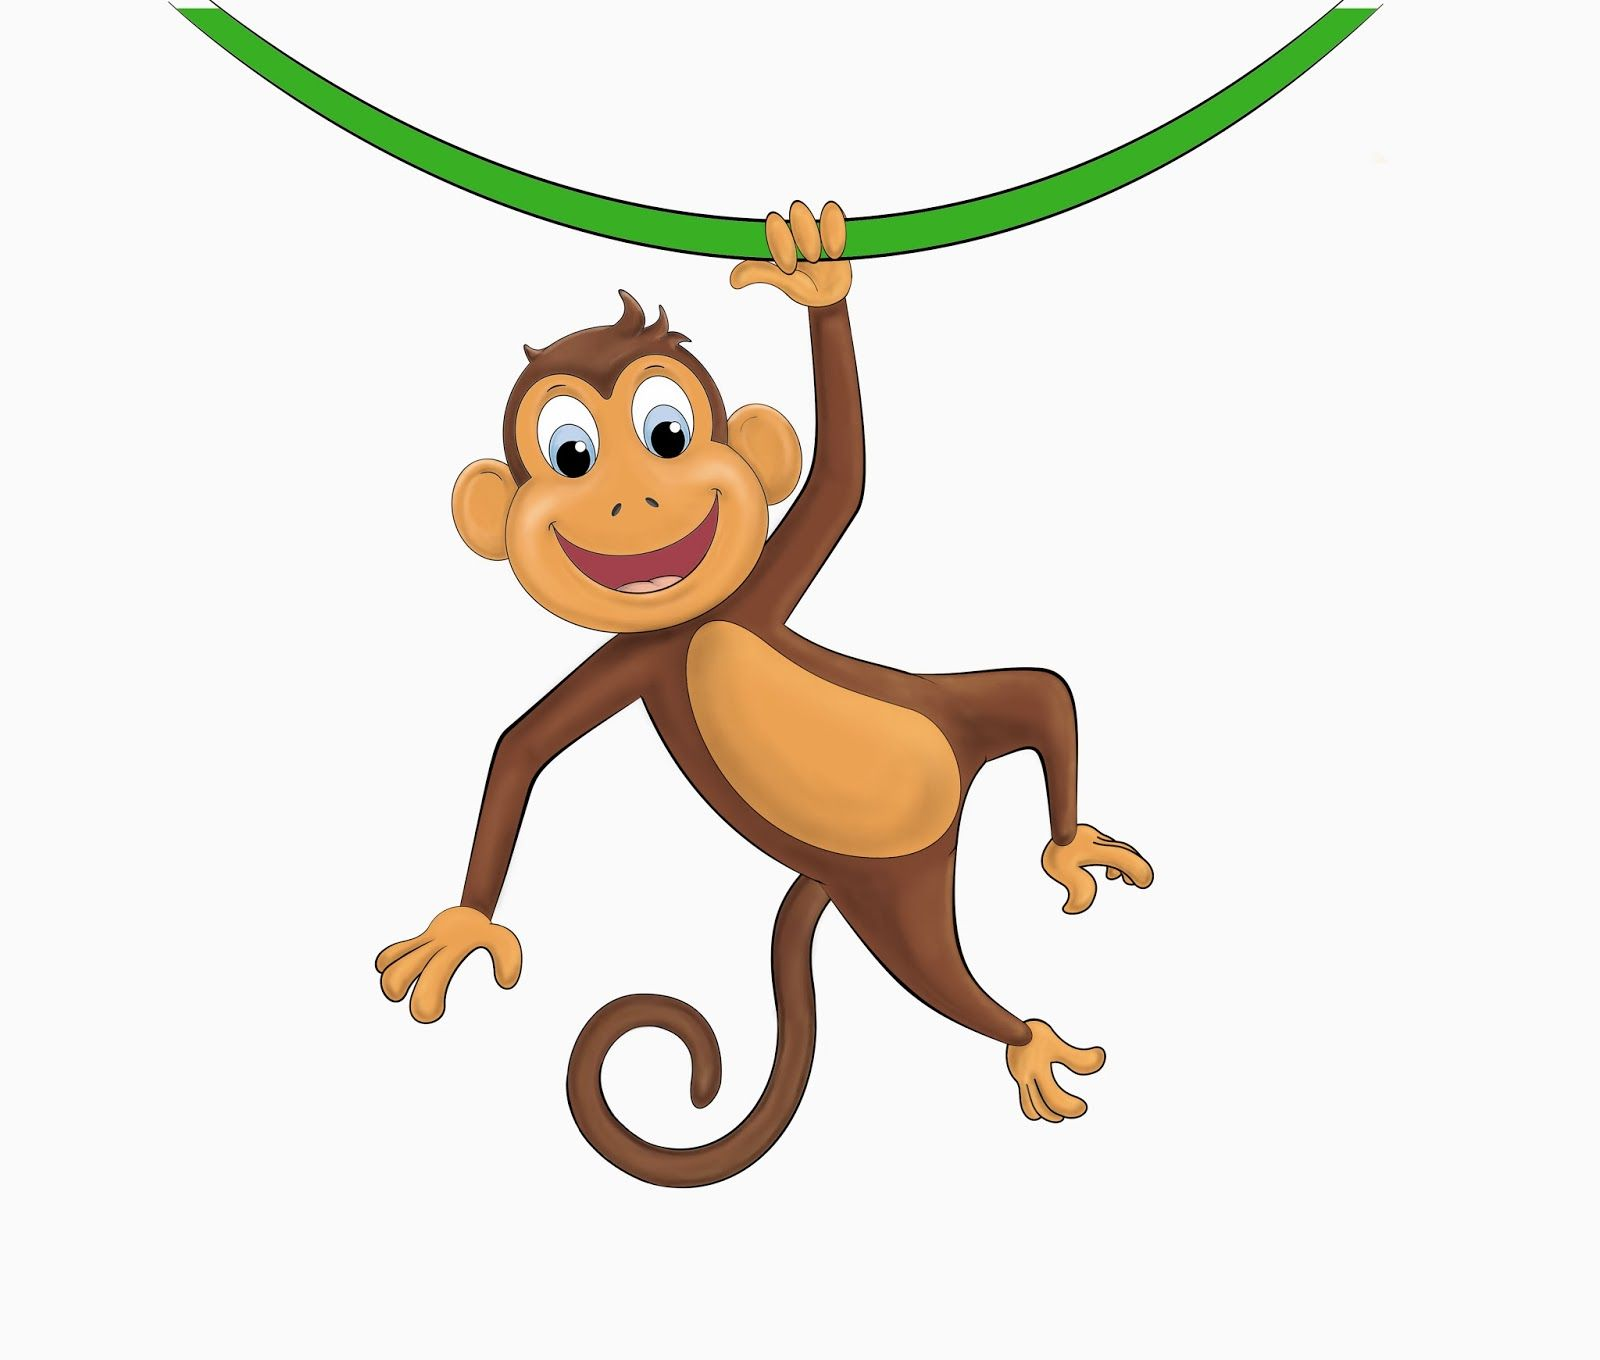 hanging monkey template clipart panda free clipart images art rh pinterest com free clipart monkeys monkey clip art free black and white